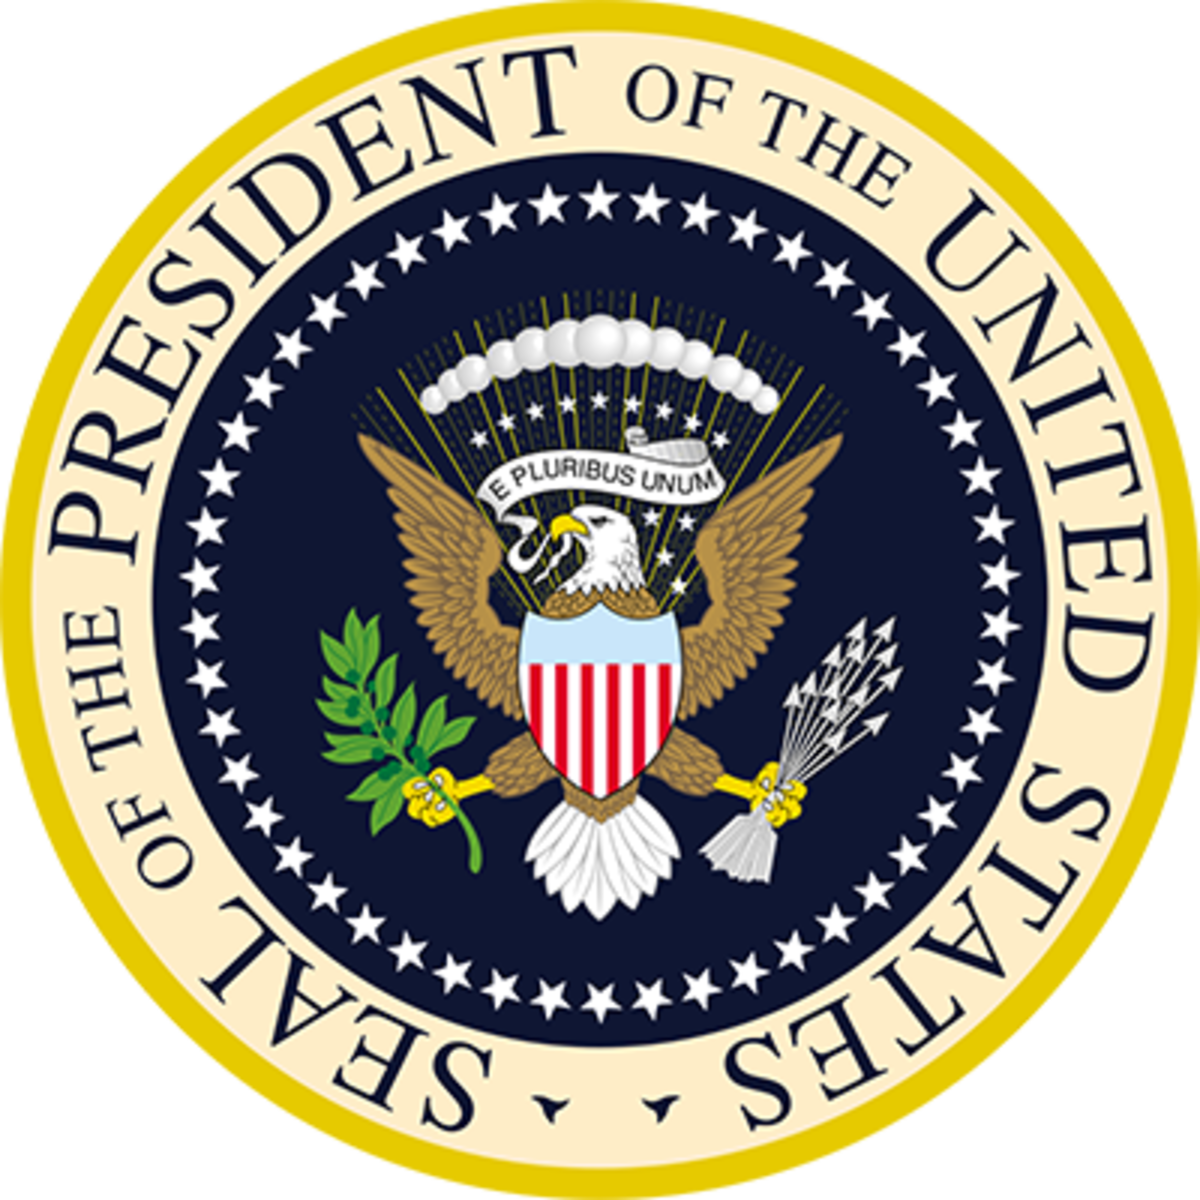 400px-Seal_of_the_President_of_the_United_States.svg copy